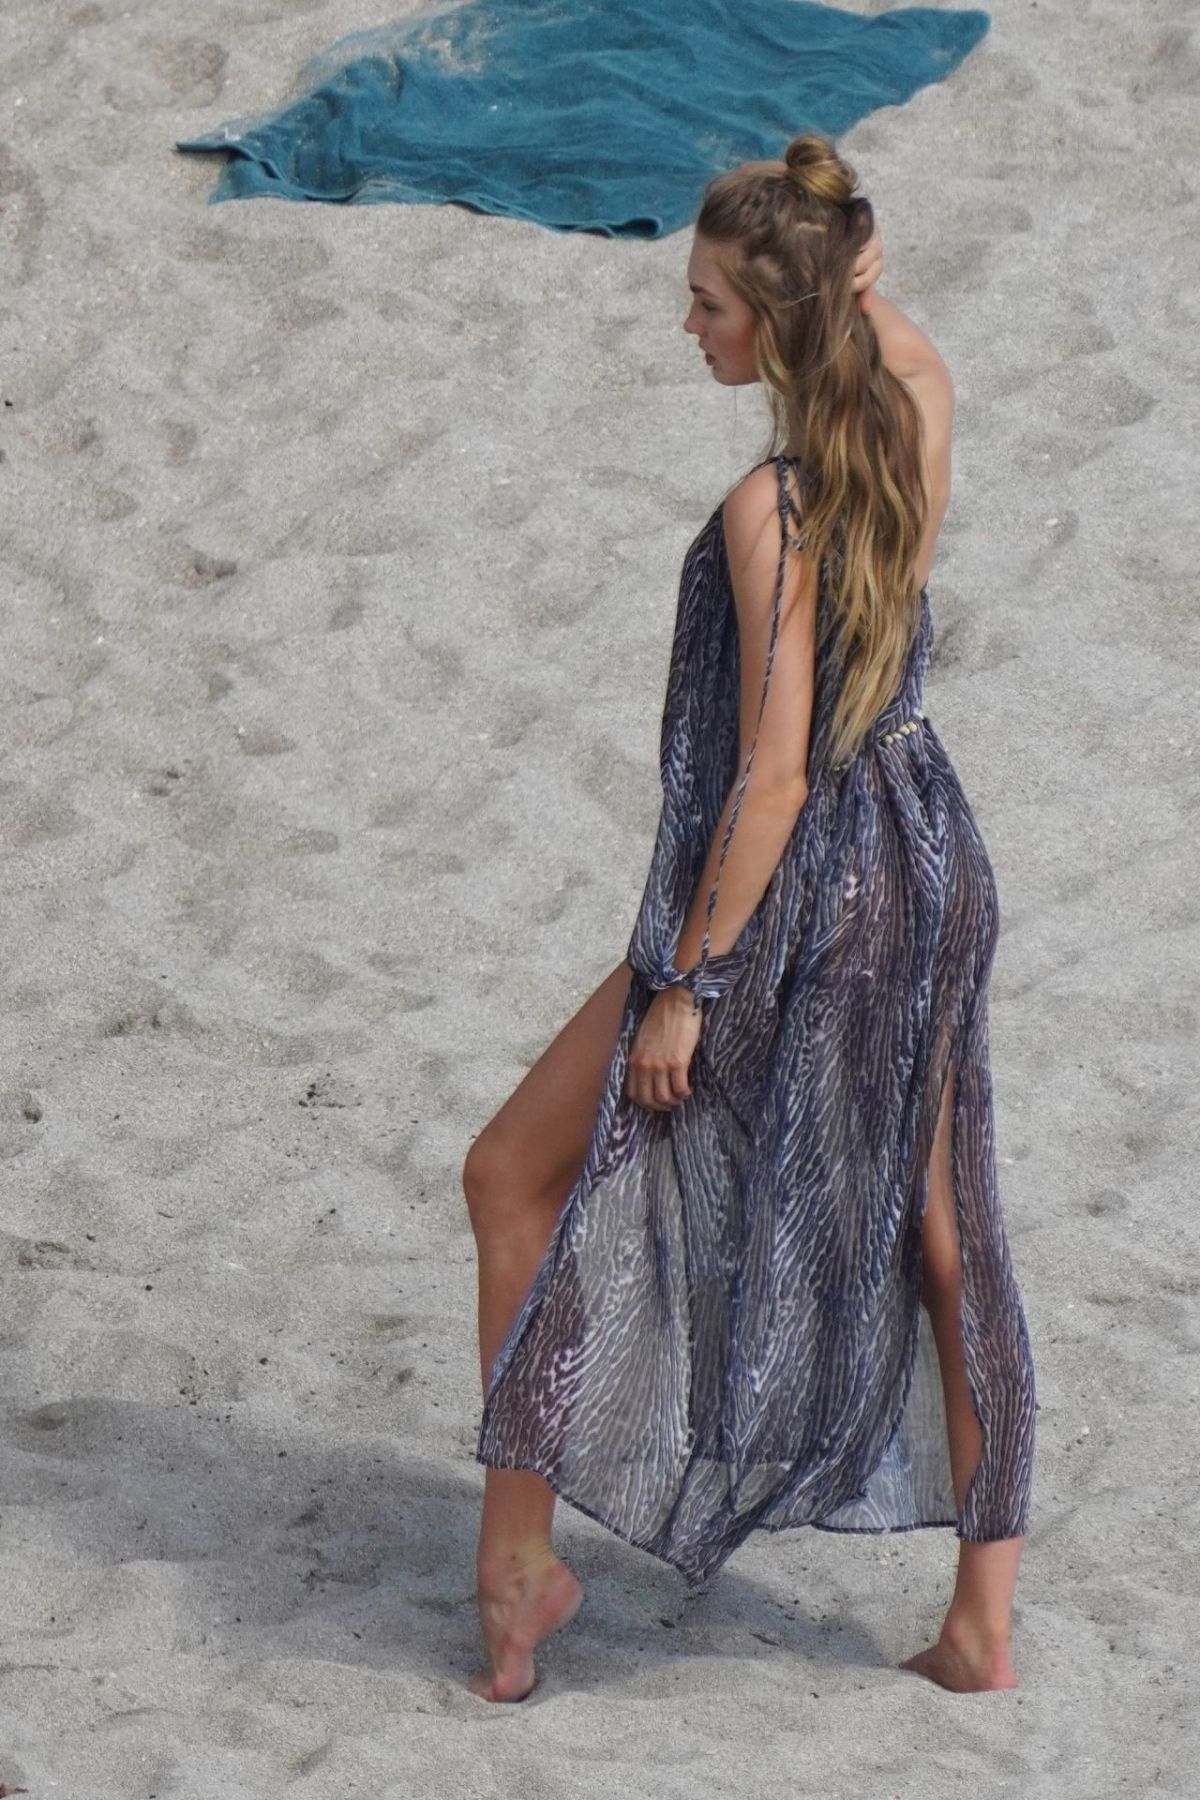 ROMEE STRIJD at a VS Photoshoot on the Beach 01/25/2020